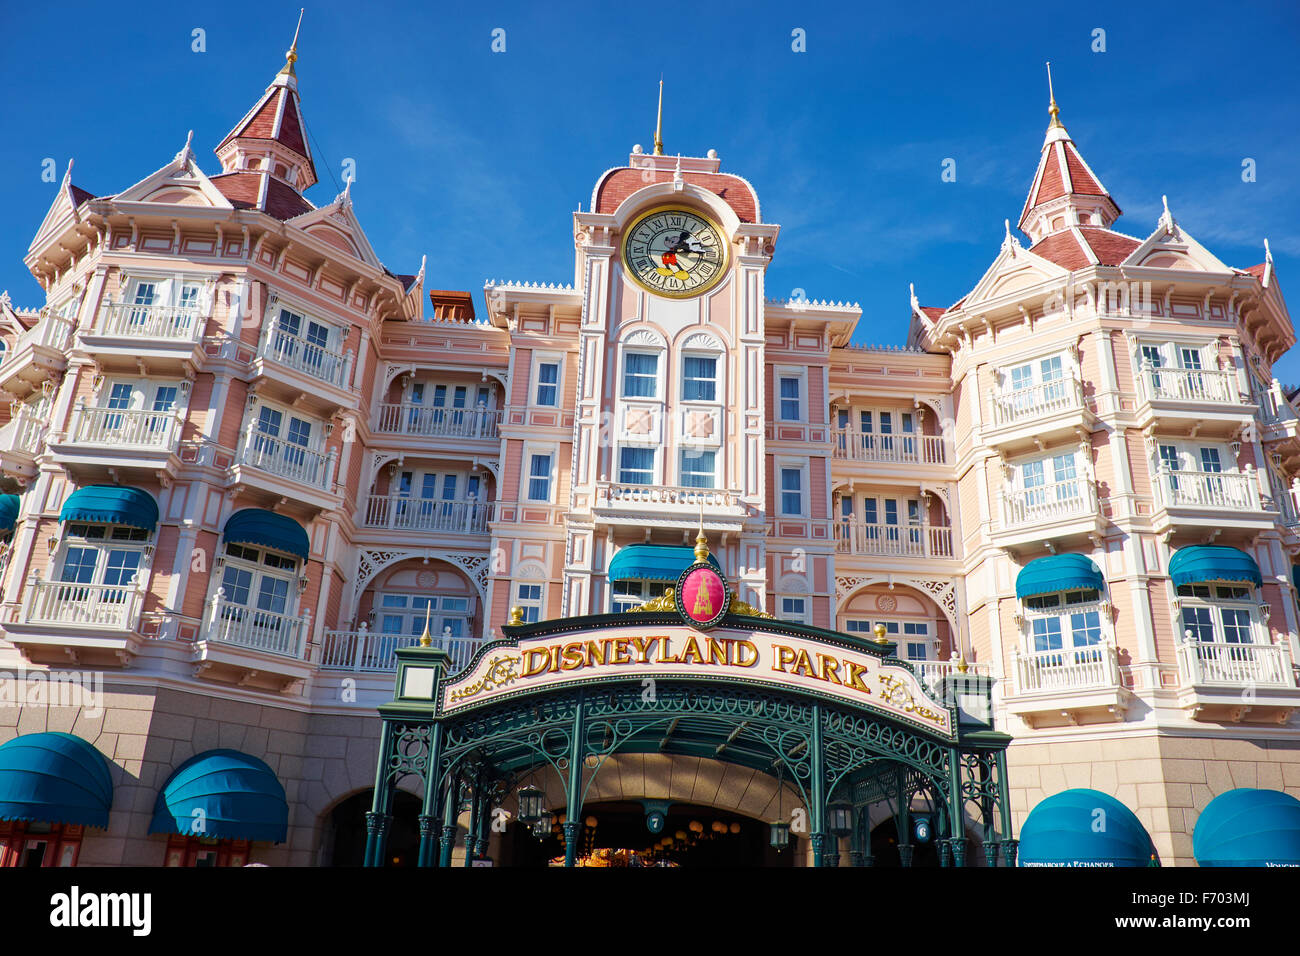 Hotel Newport Disneyland Resort Paris